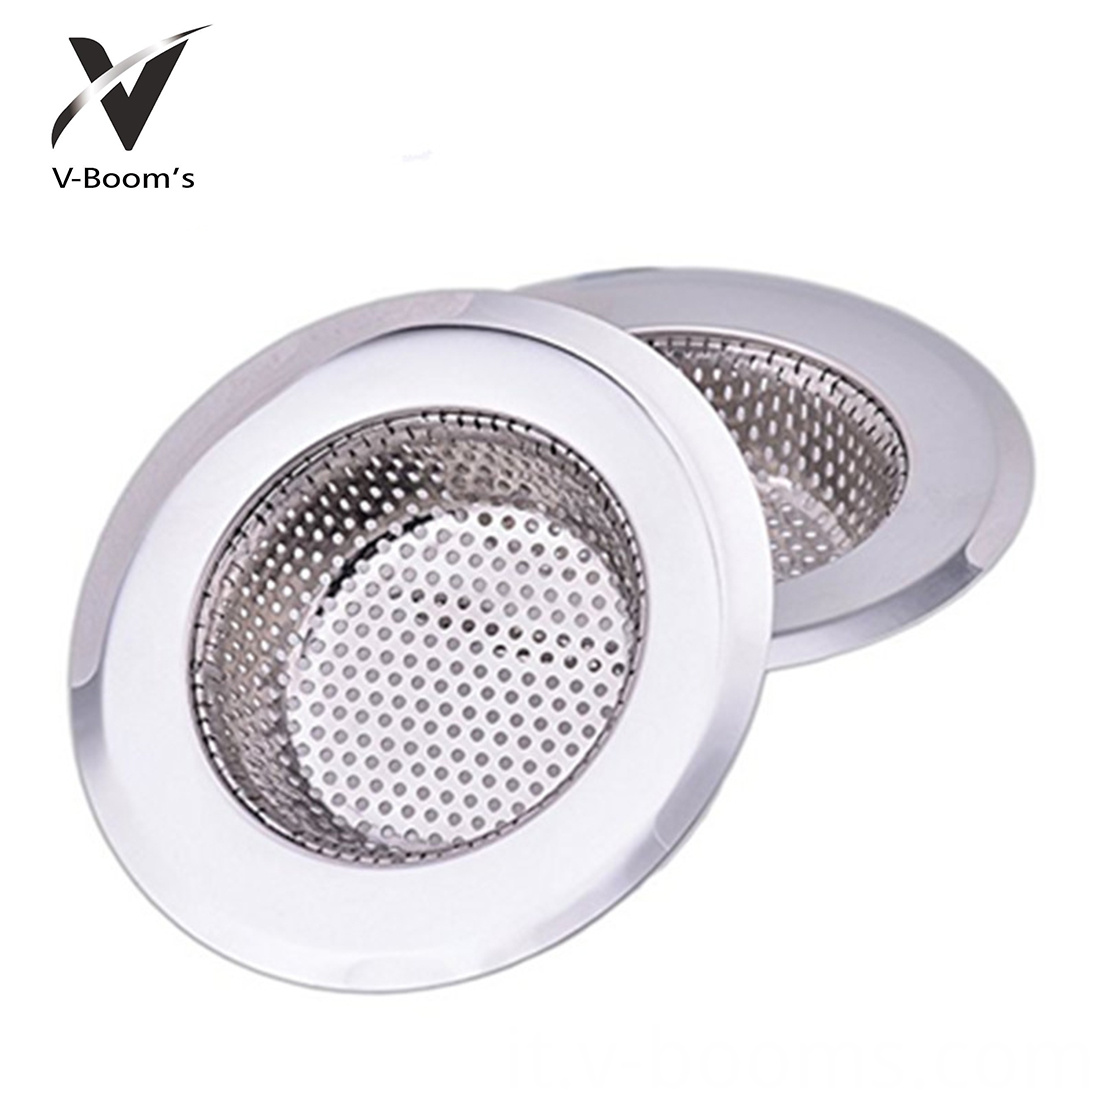 Stainless Steel Sink Drain Strainer Basket